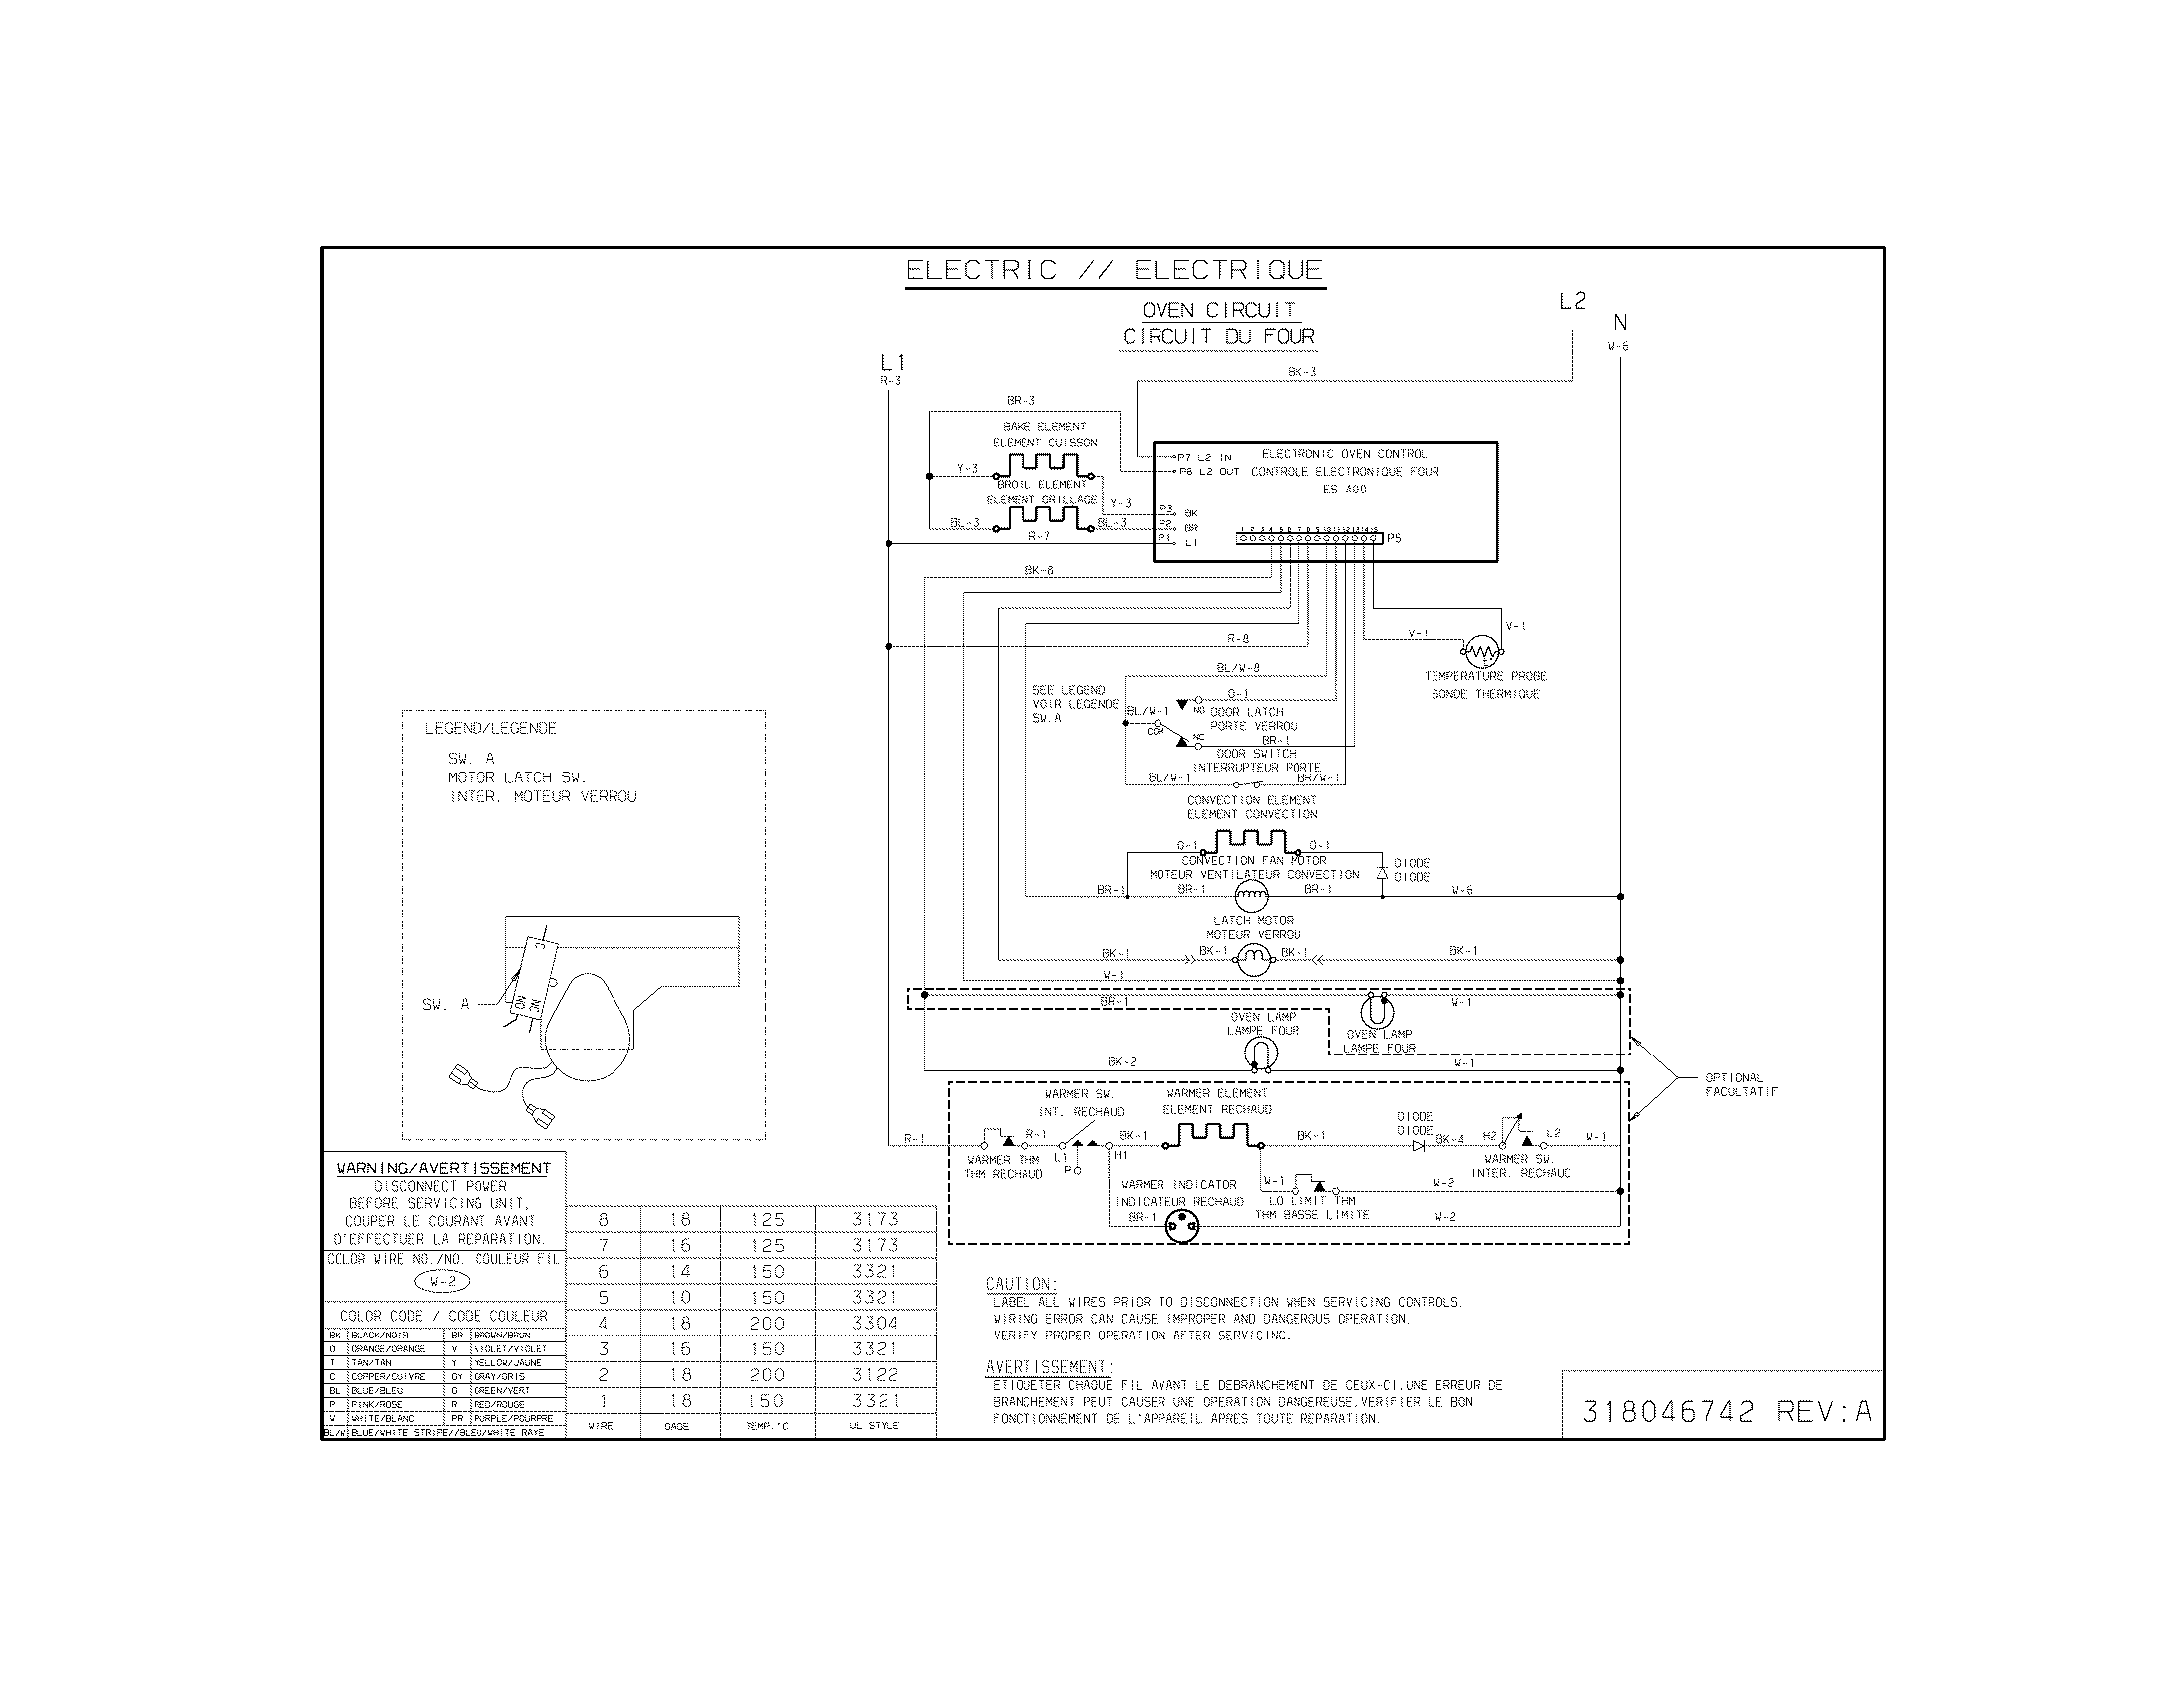 wiring diagram parts door strike wiring diagram how to wire electric door strike schlage wiring diagrams at bayanpartner.co